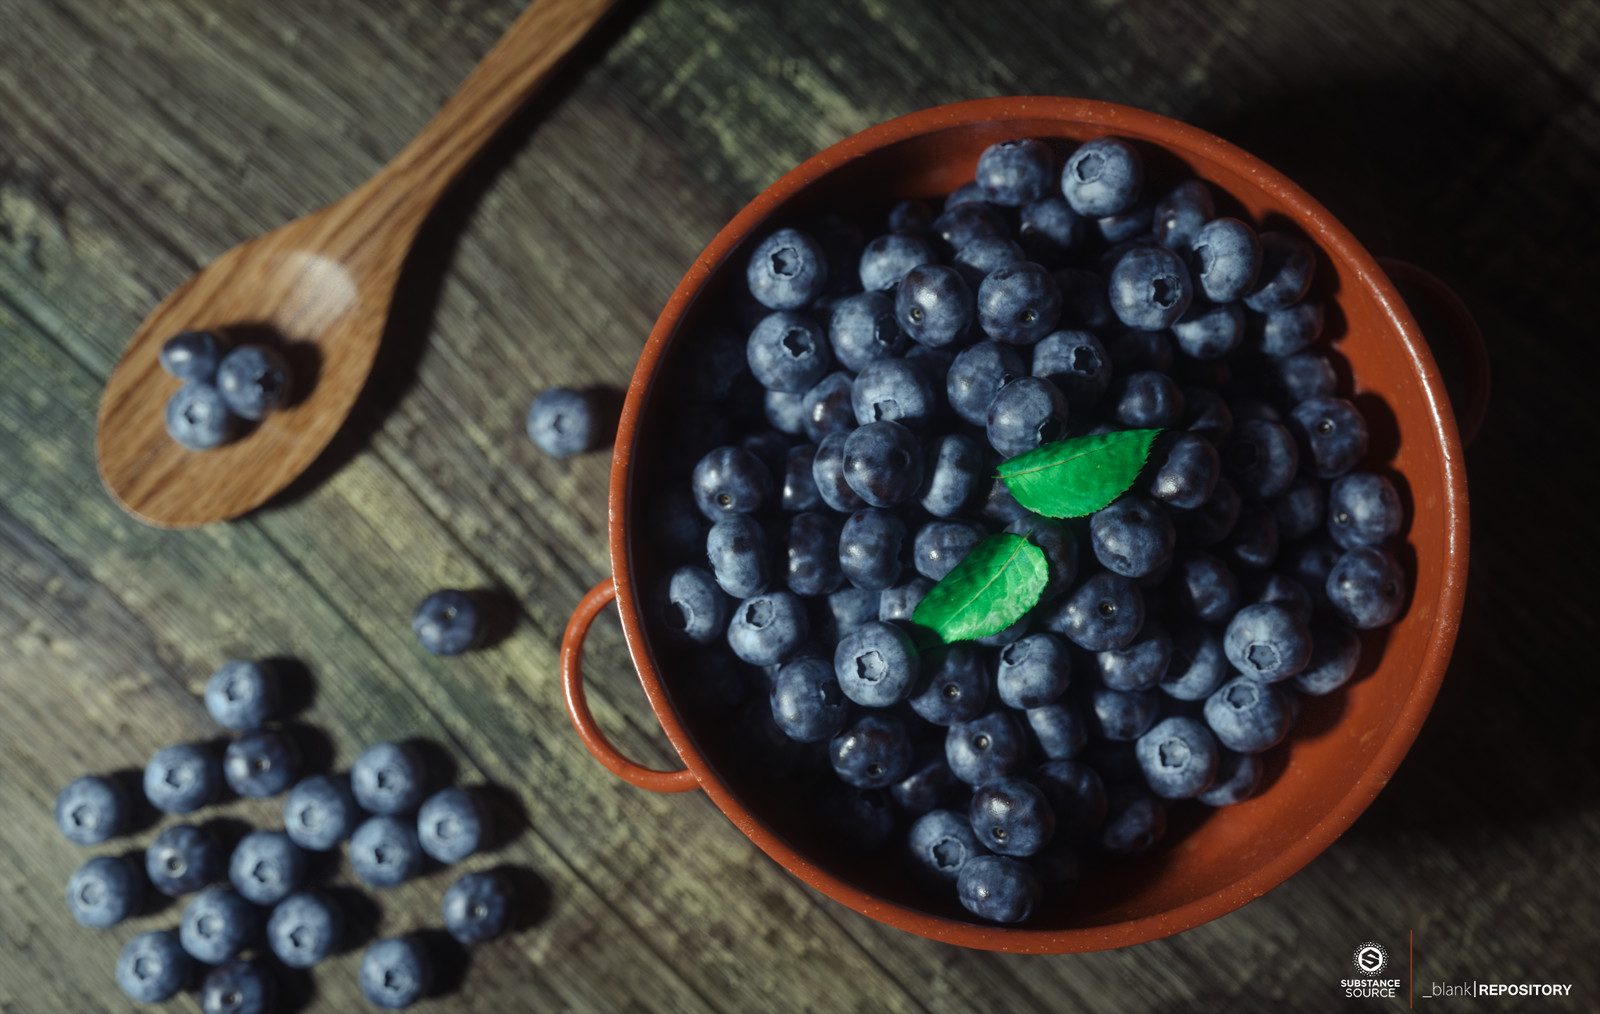 Still life - Bowl of Blueberries